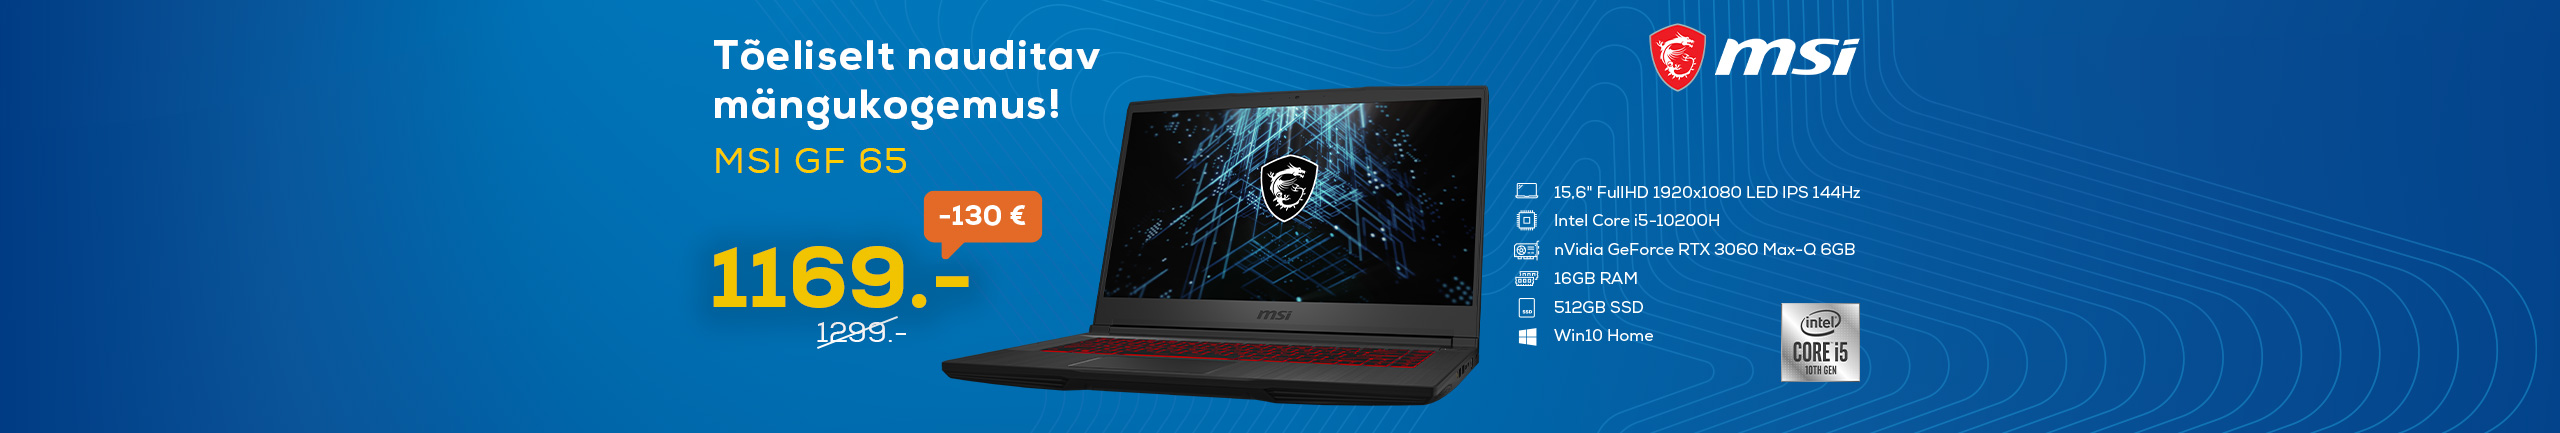 MSI GF65 - Truly enjoyable gaming experience!